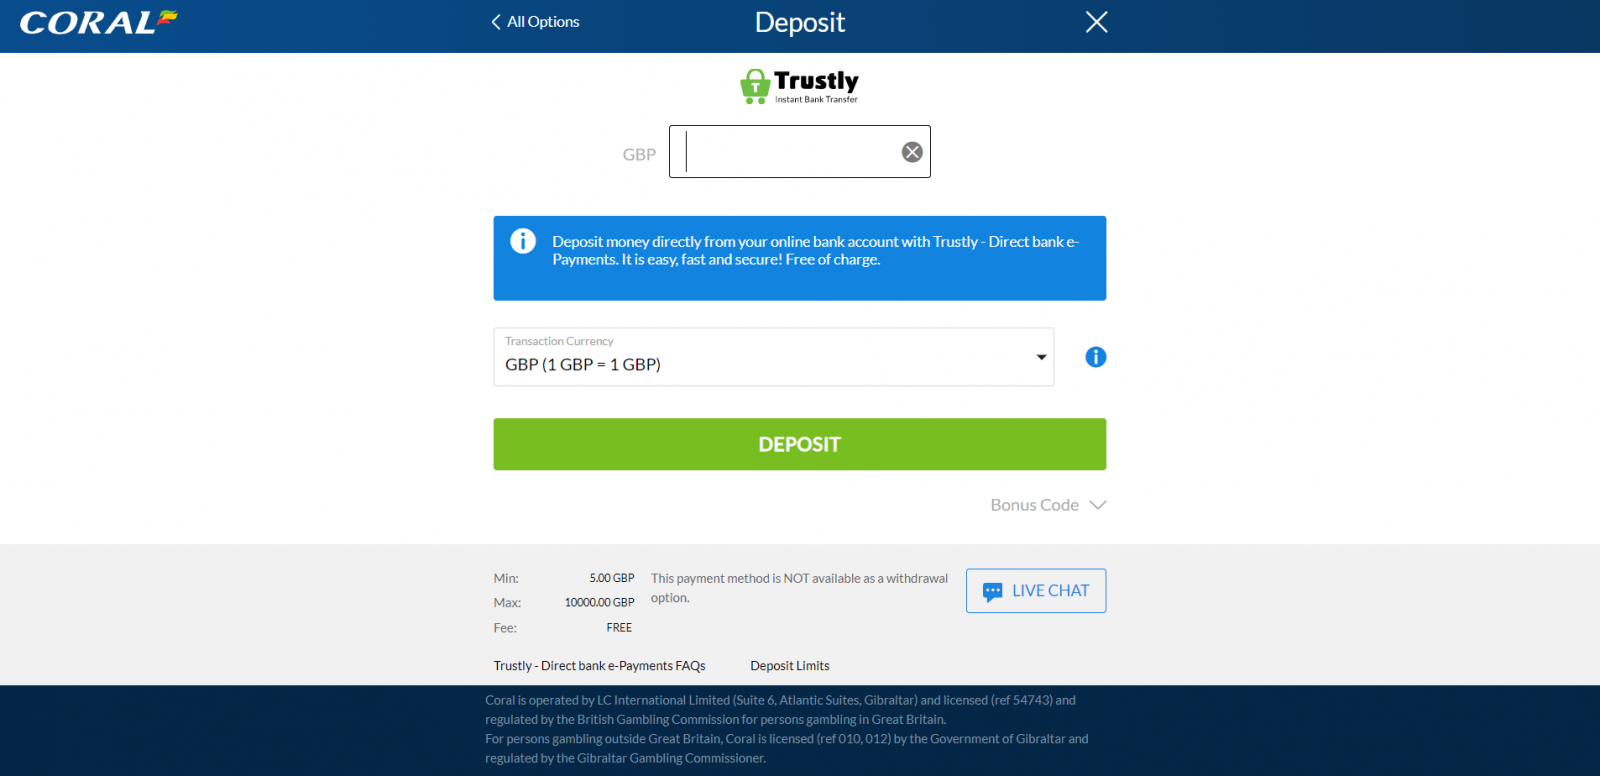 Coral Trustly betting site - deposit page